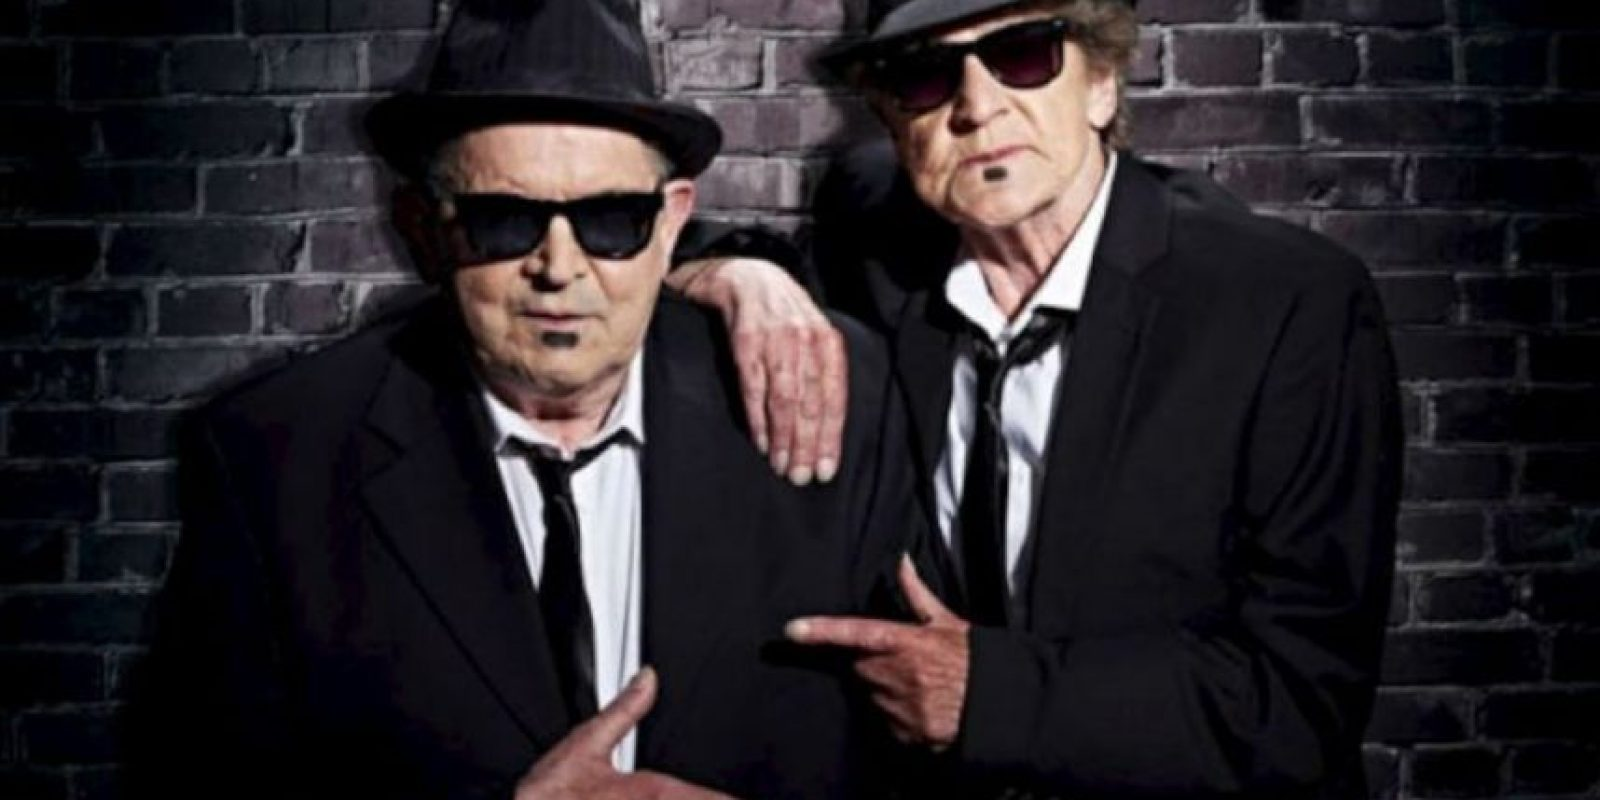 The Blues Brothers Foto: Vía Igmur